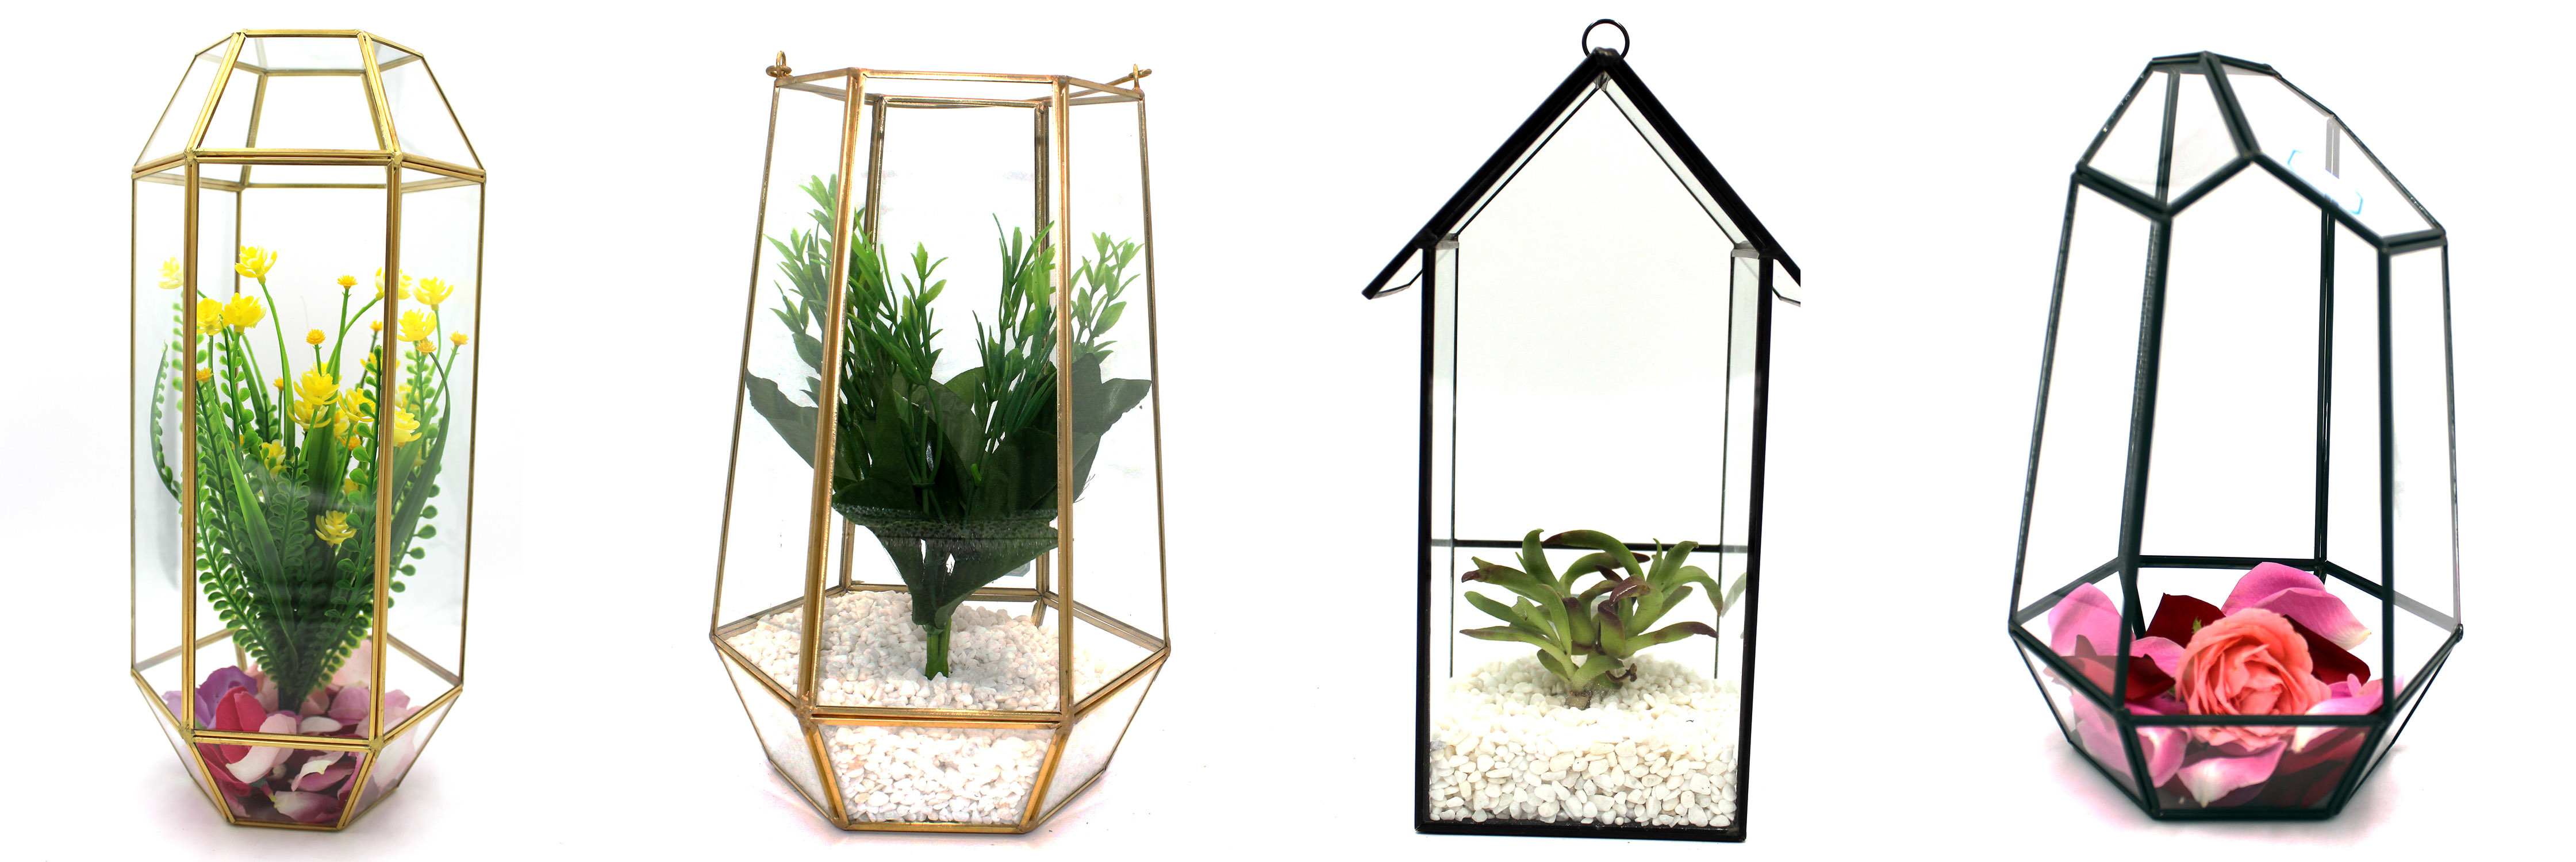 Stained Glass House Terrarium Planter For Indoor Gardening Succulent Moss Fairy Garden China Glass Decoration And Home Decor Price Made In China Com